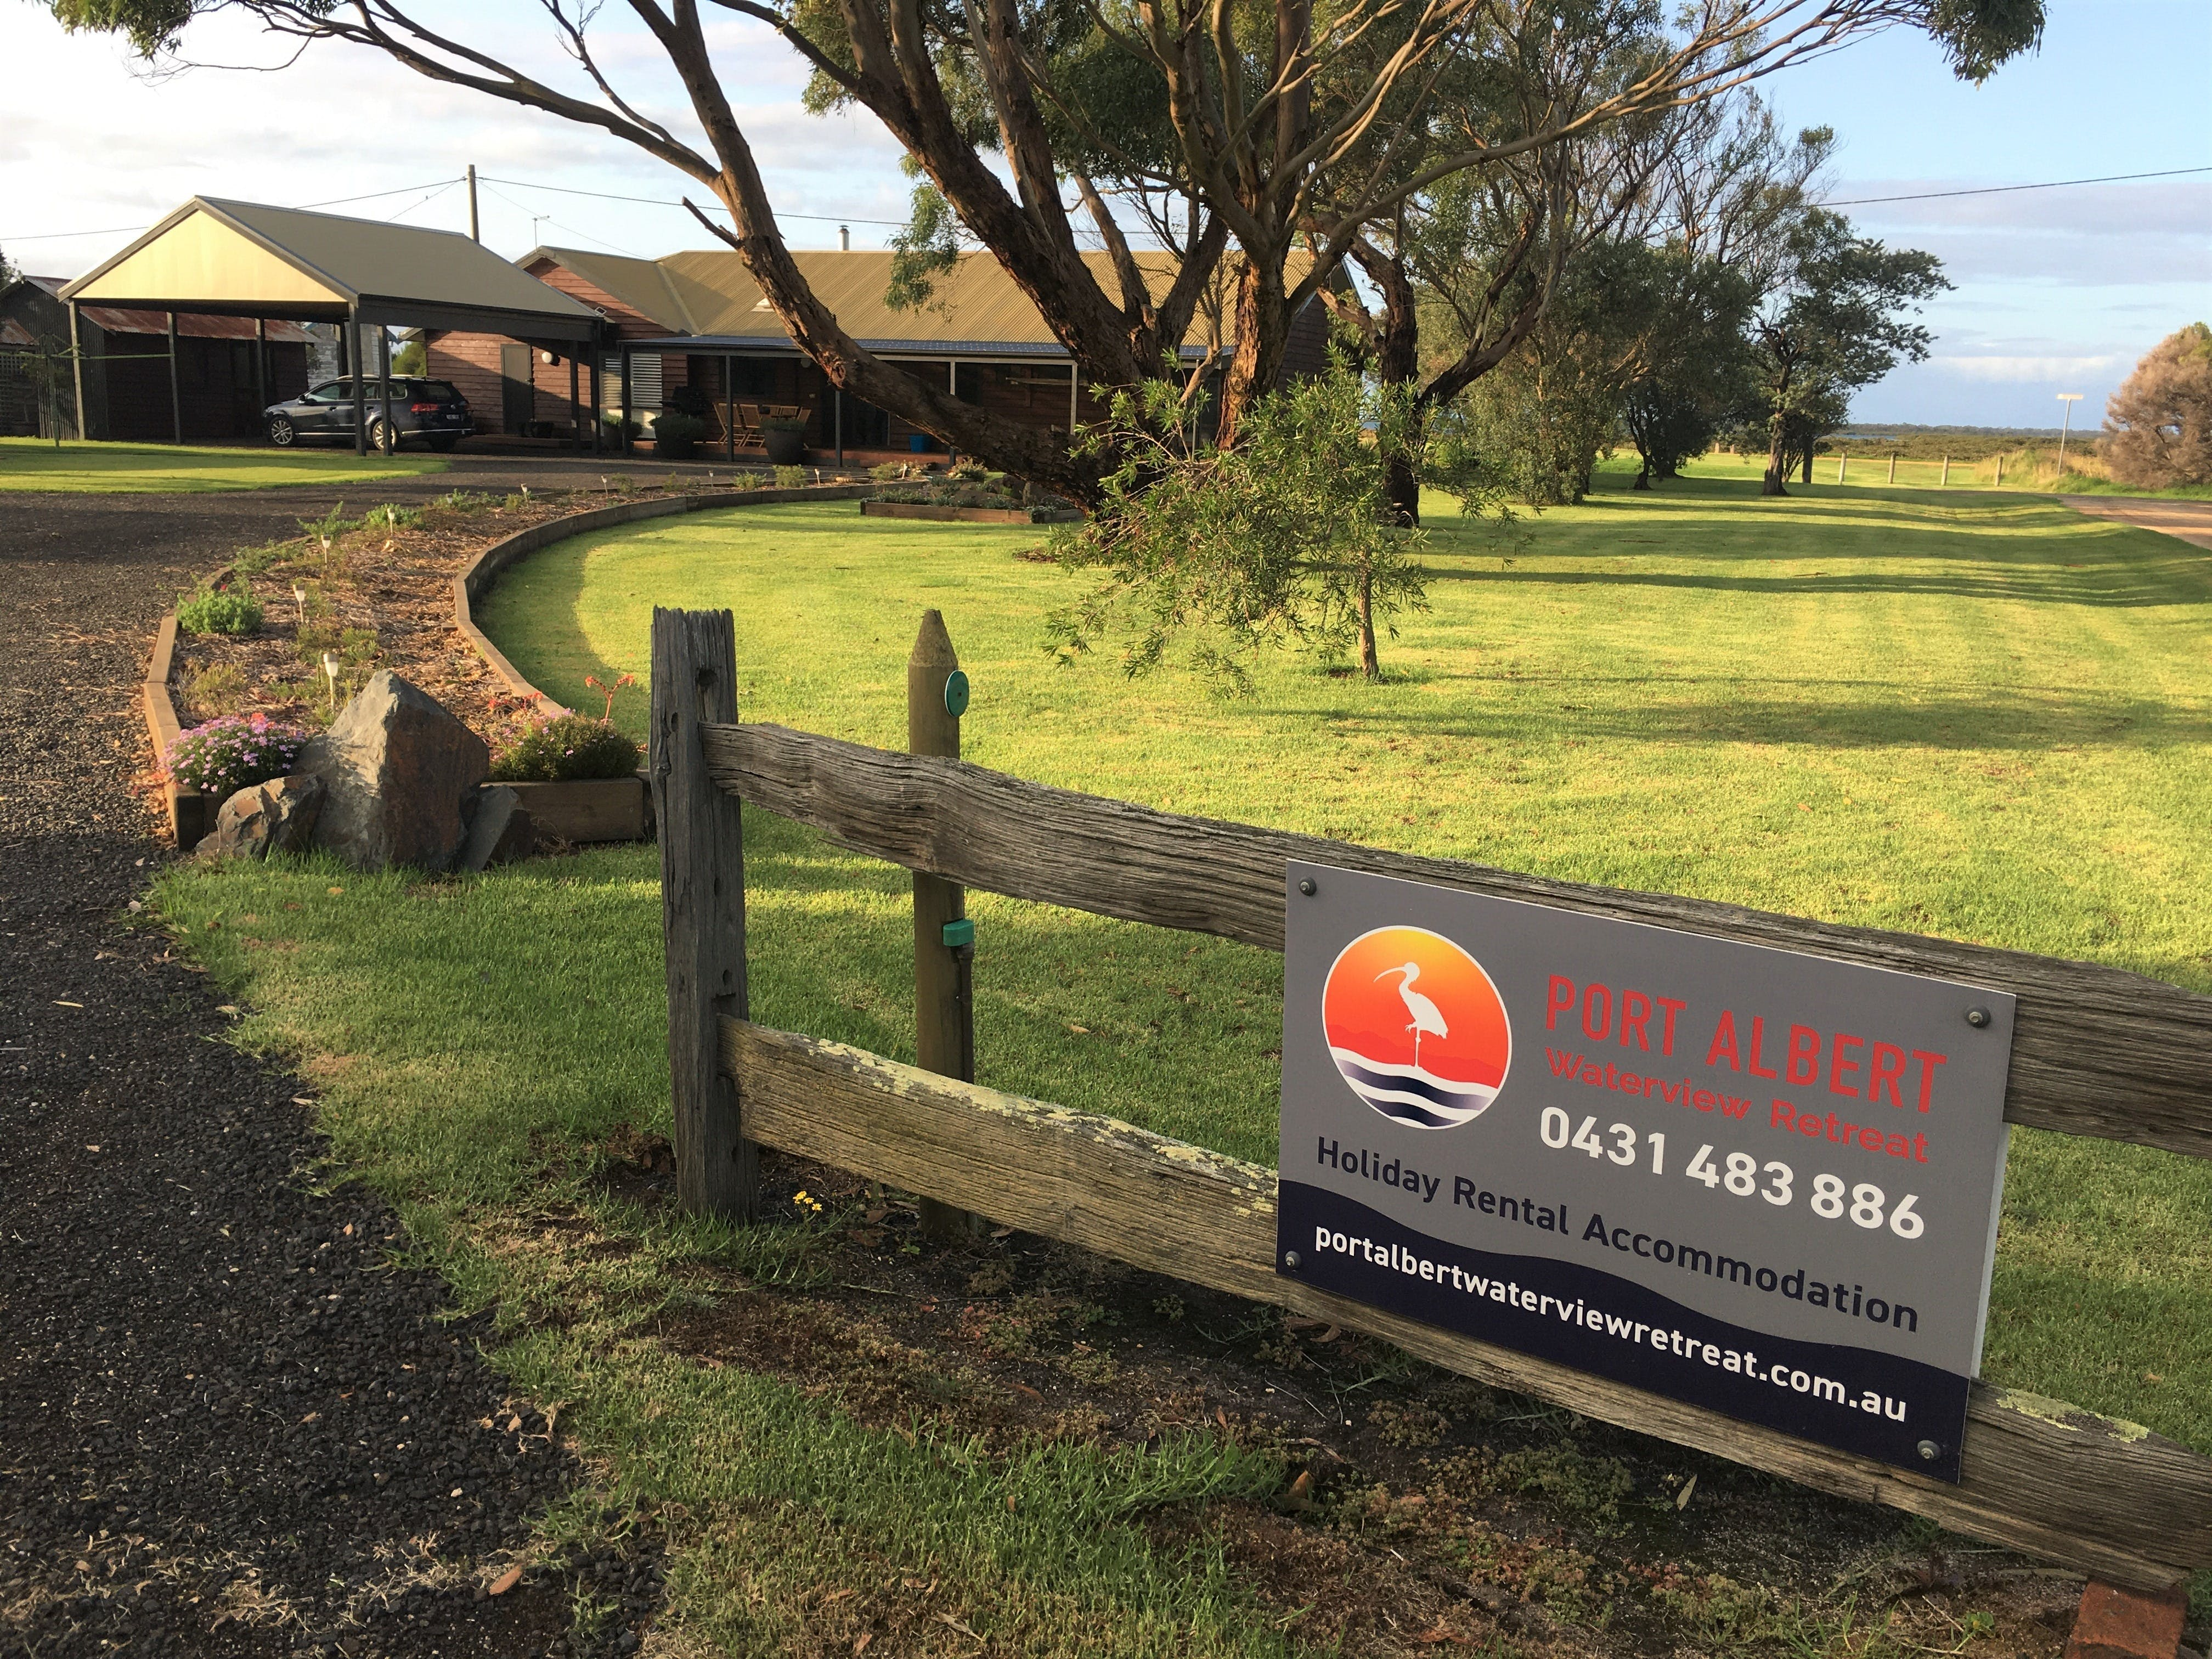 Port Albert Waterview Retreat - Accommodation Adelaide